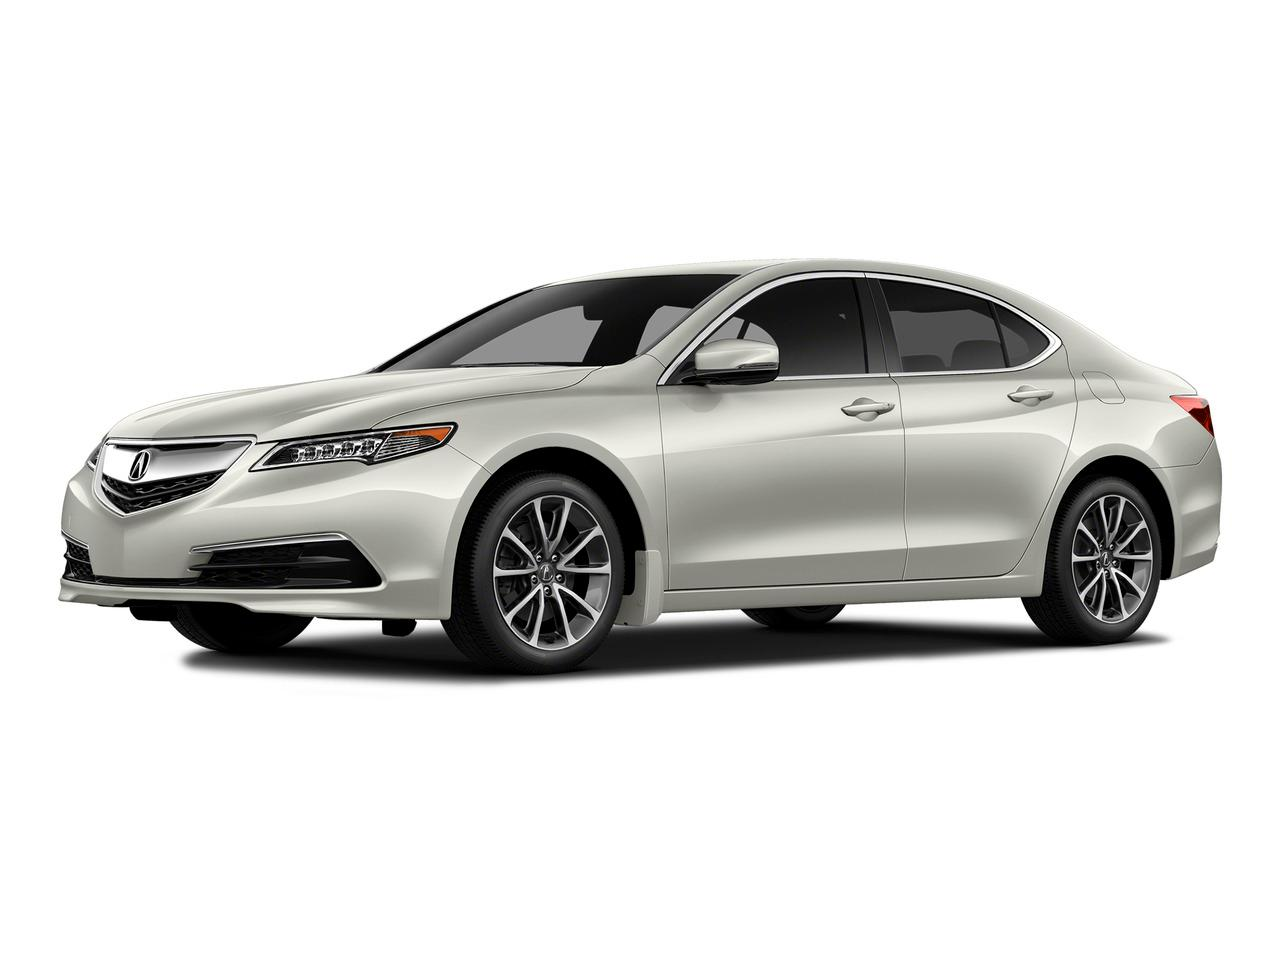 2015 Acura TLX Vehicle Photo in Concord, NC 28027